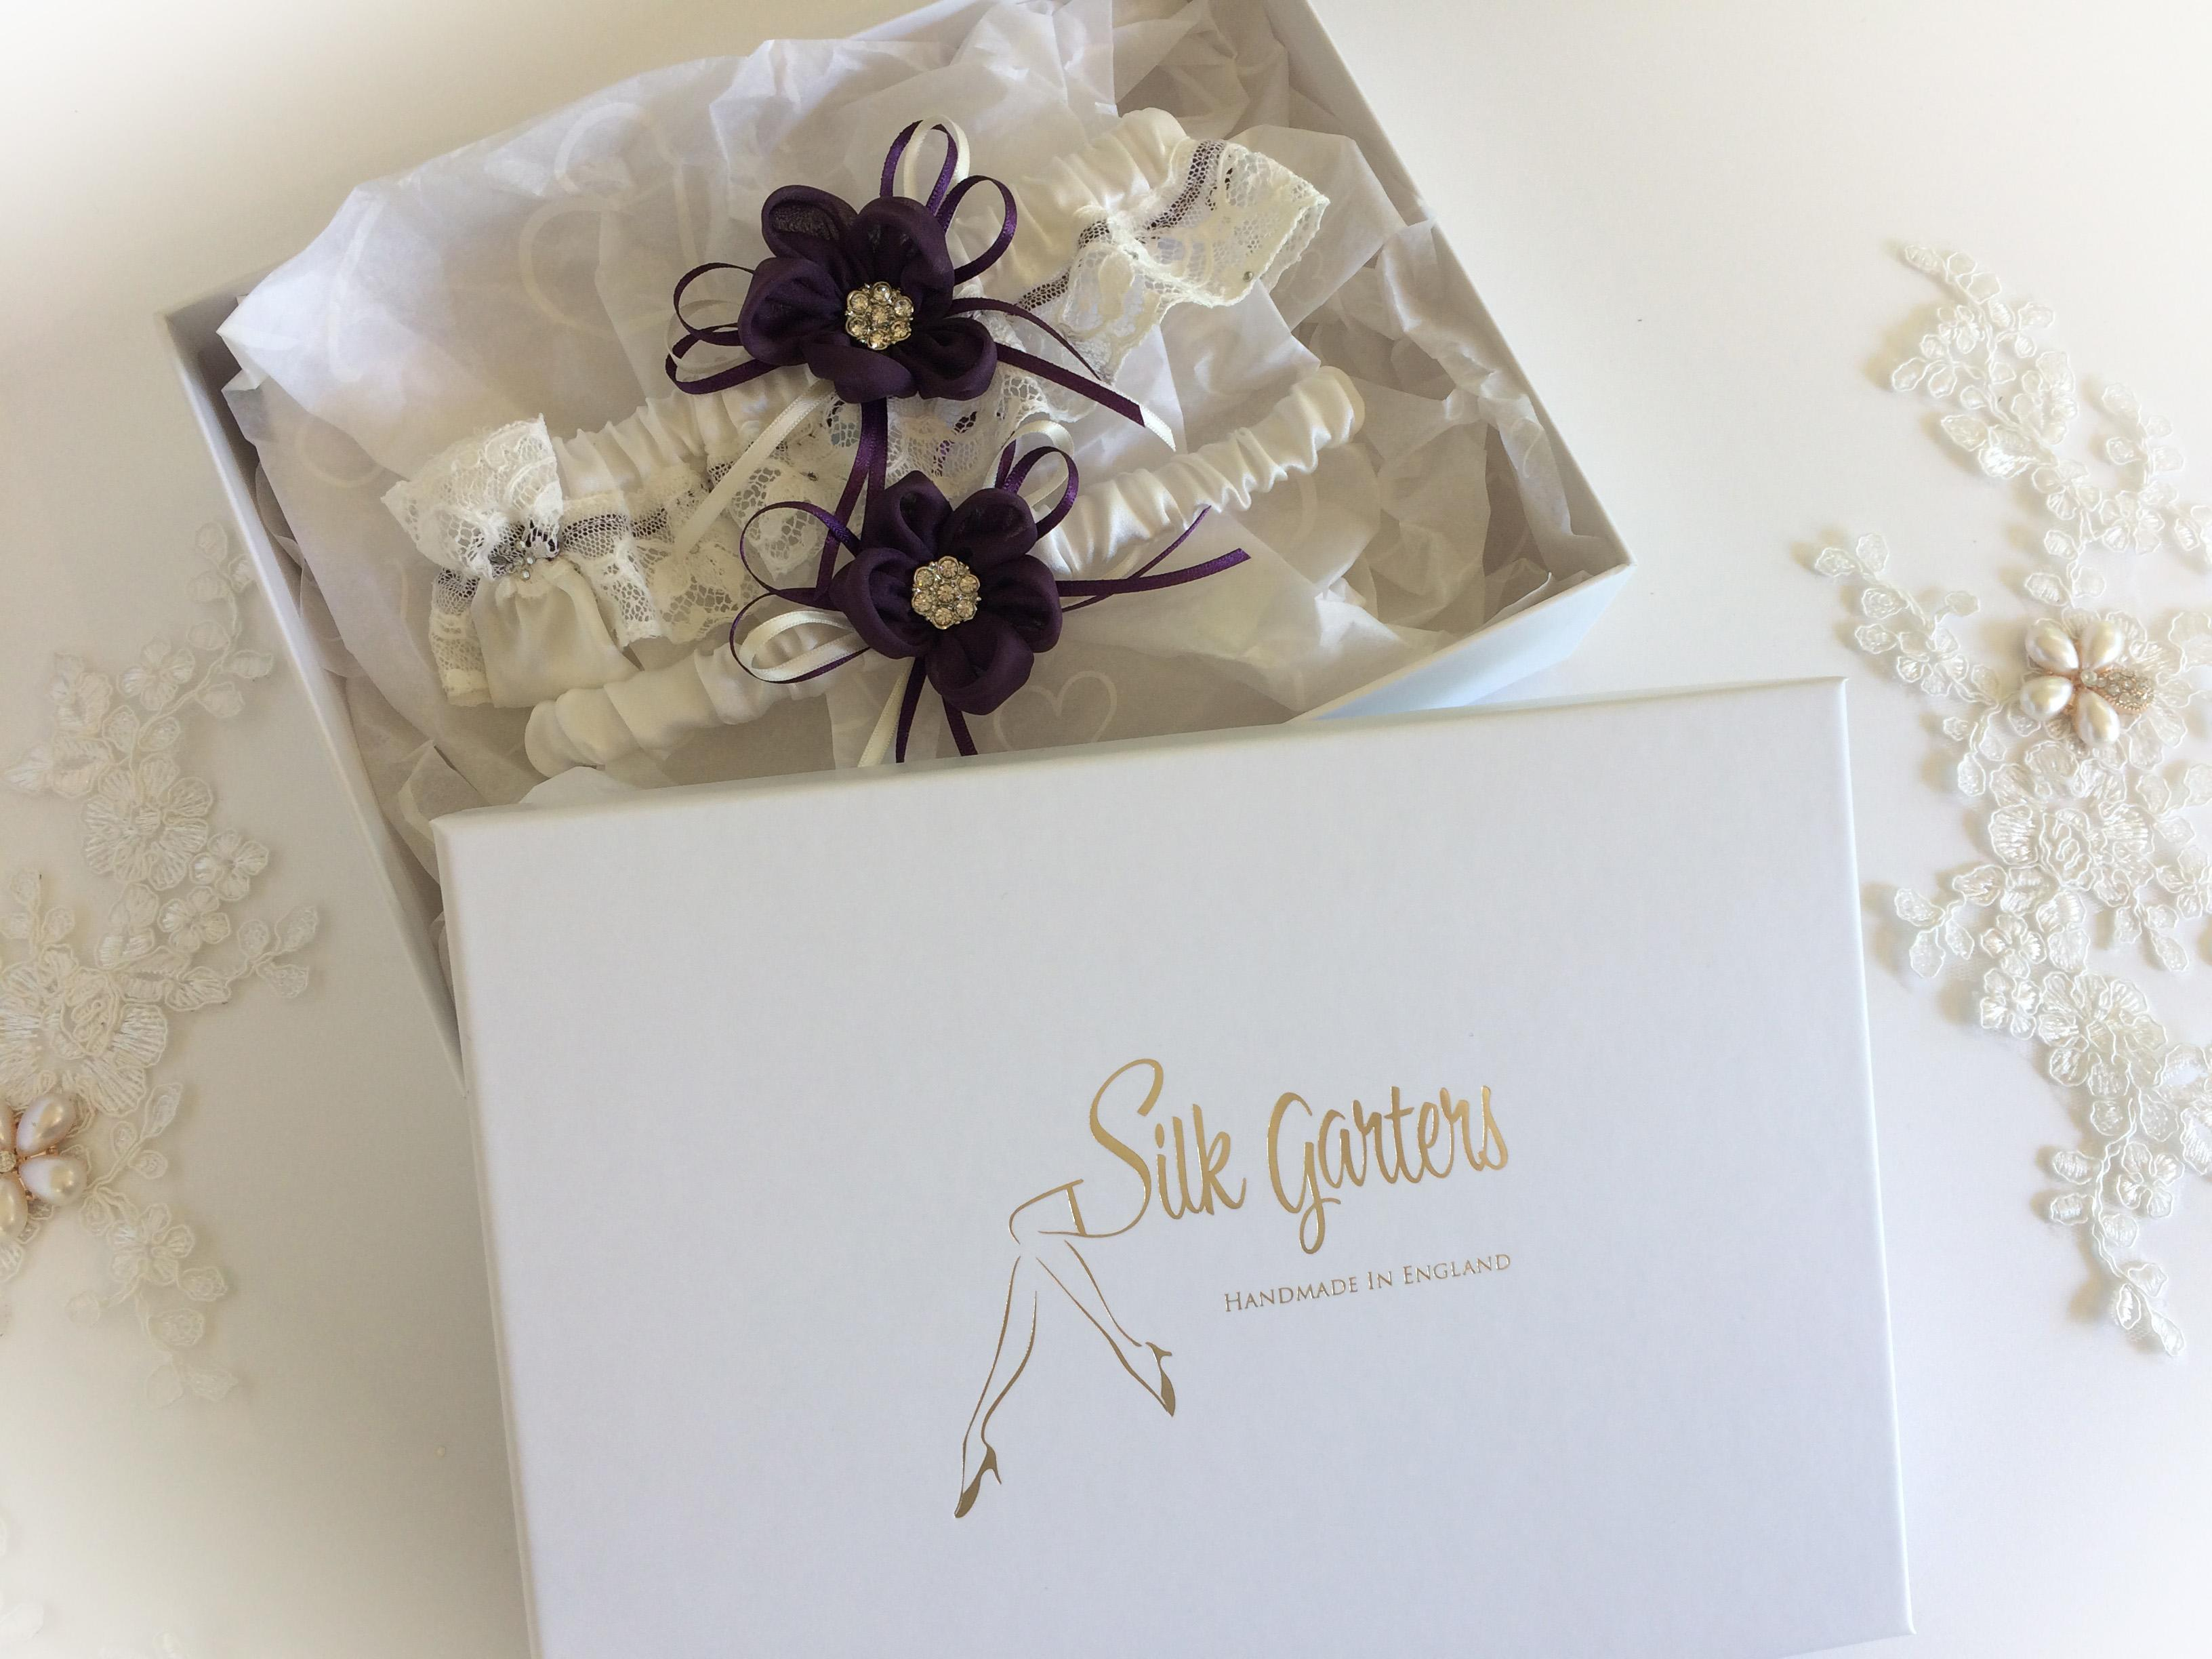 Unique wedding garter 'Silk Daisy' Exclusive to Silk Garters, with handmade flowers and Nottingham lace